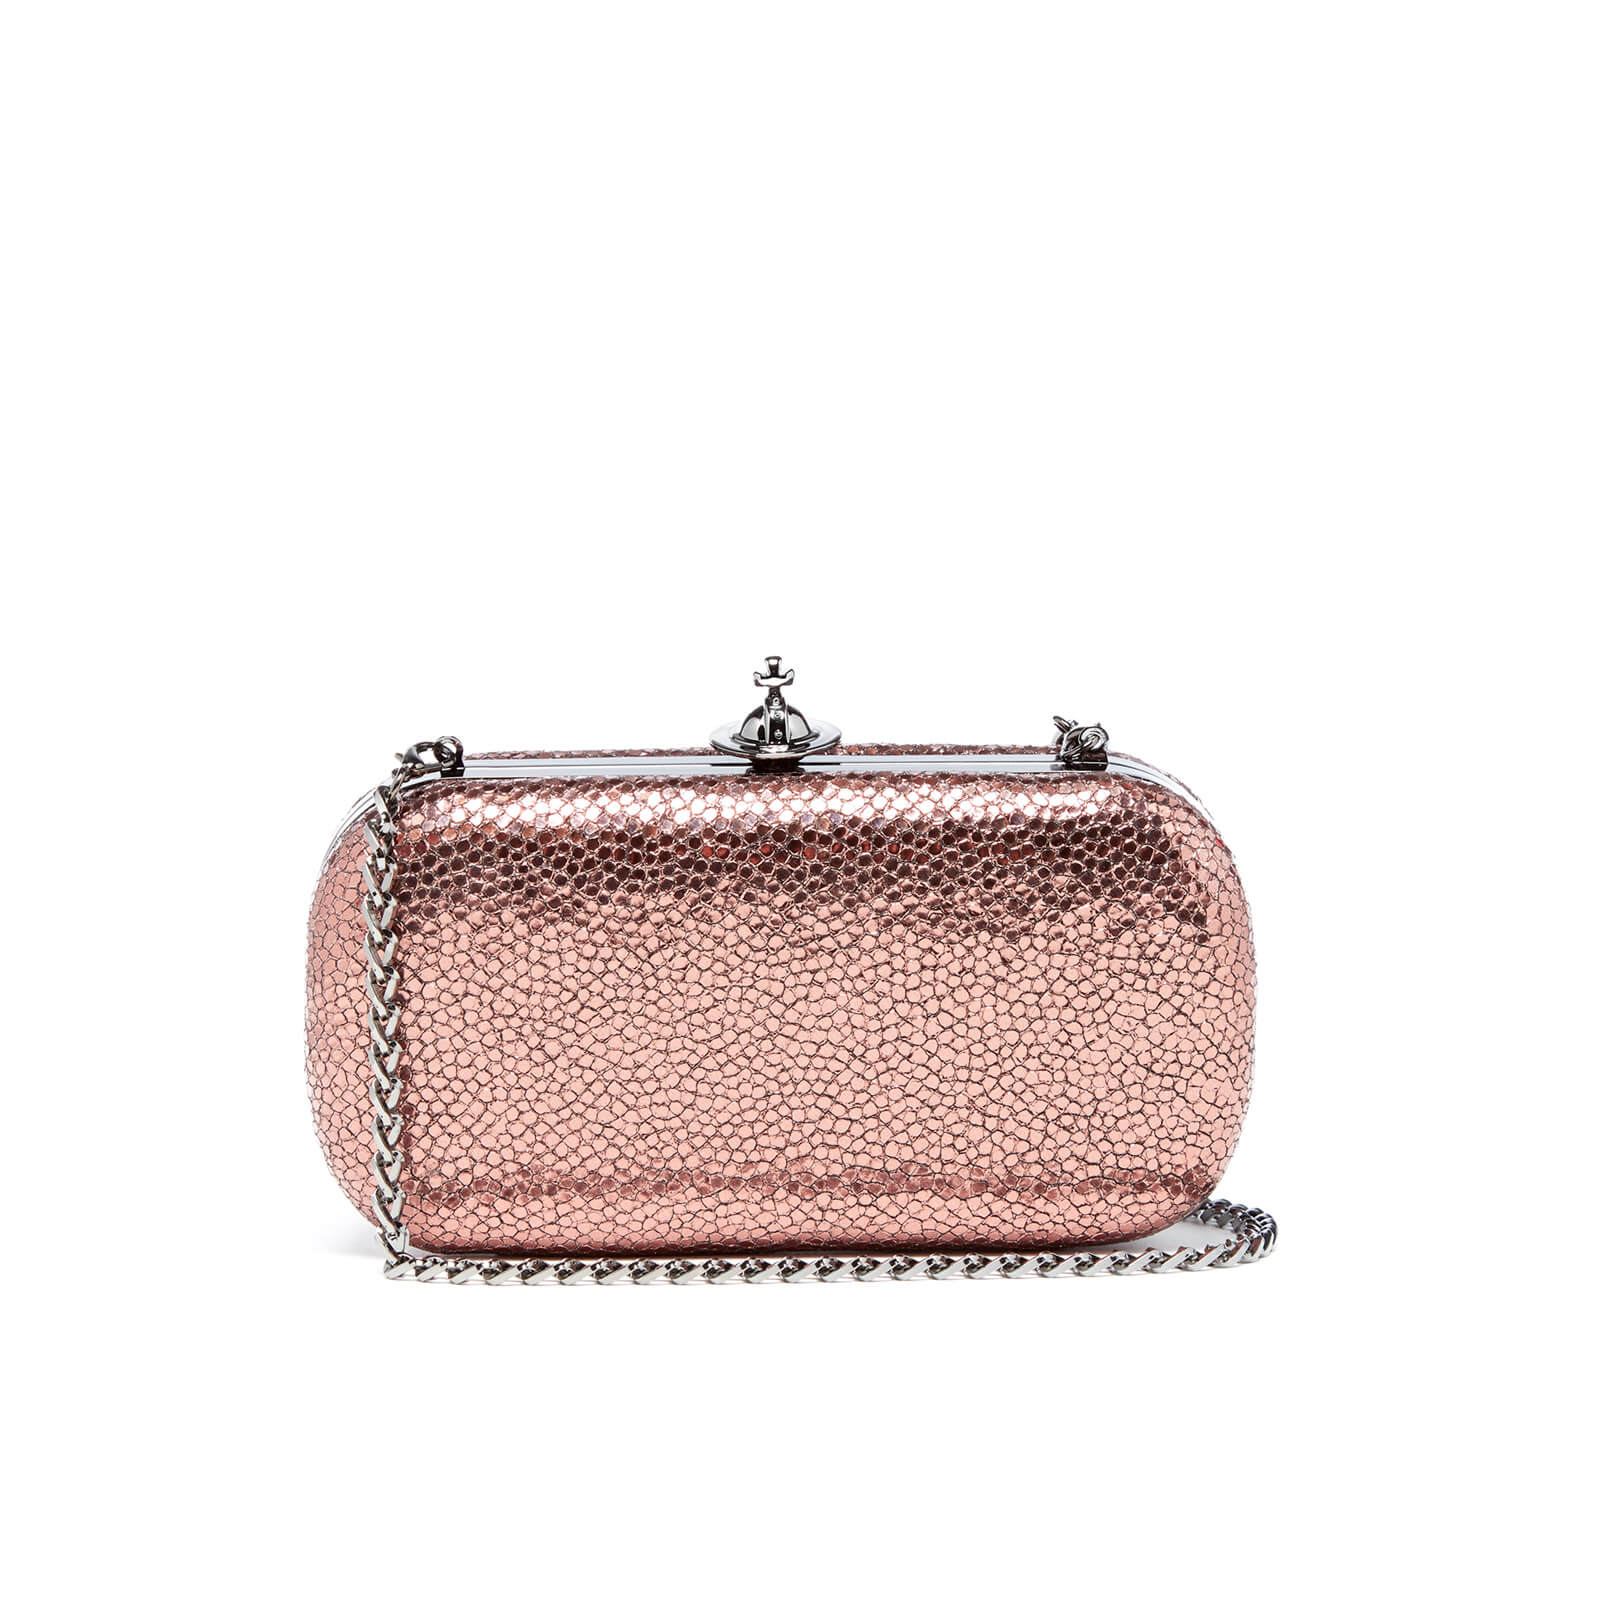 4018dc298 Vivienne Westwood Women's Verona Medium Clutch Bag - Pink - Free UK  Delivery over £50